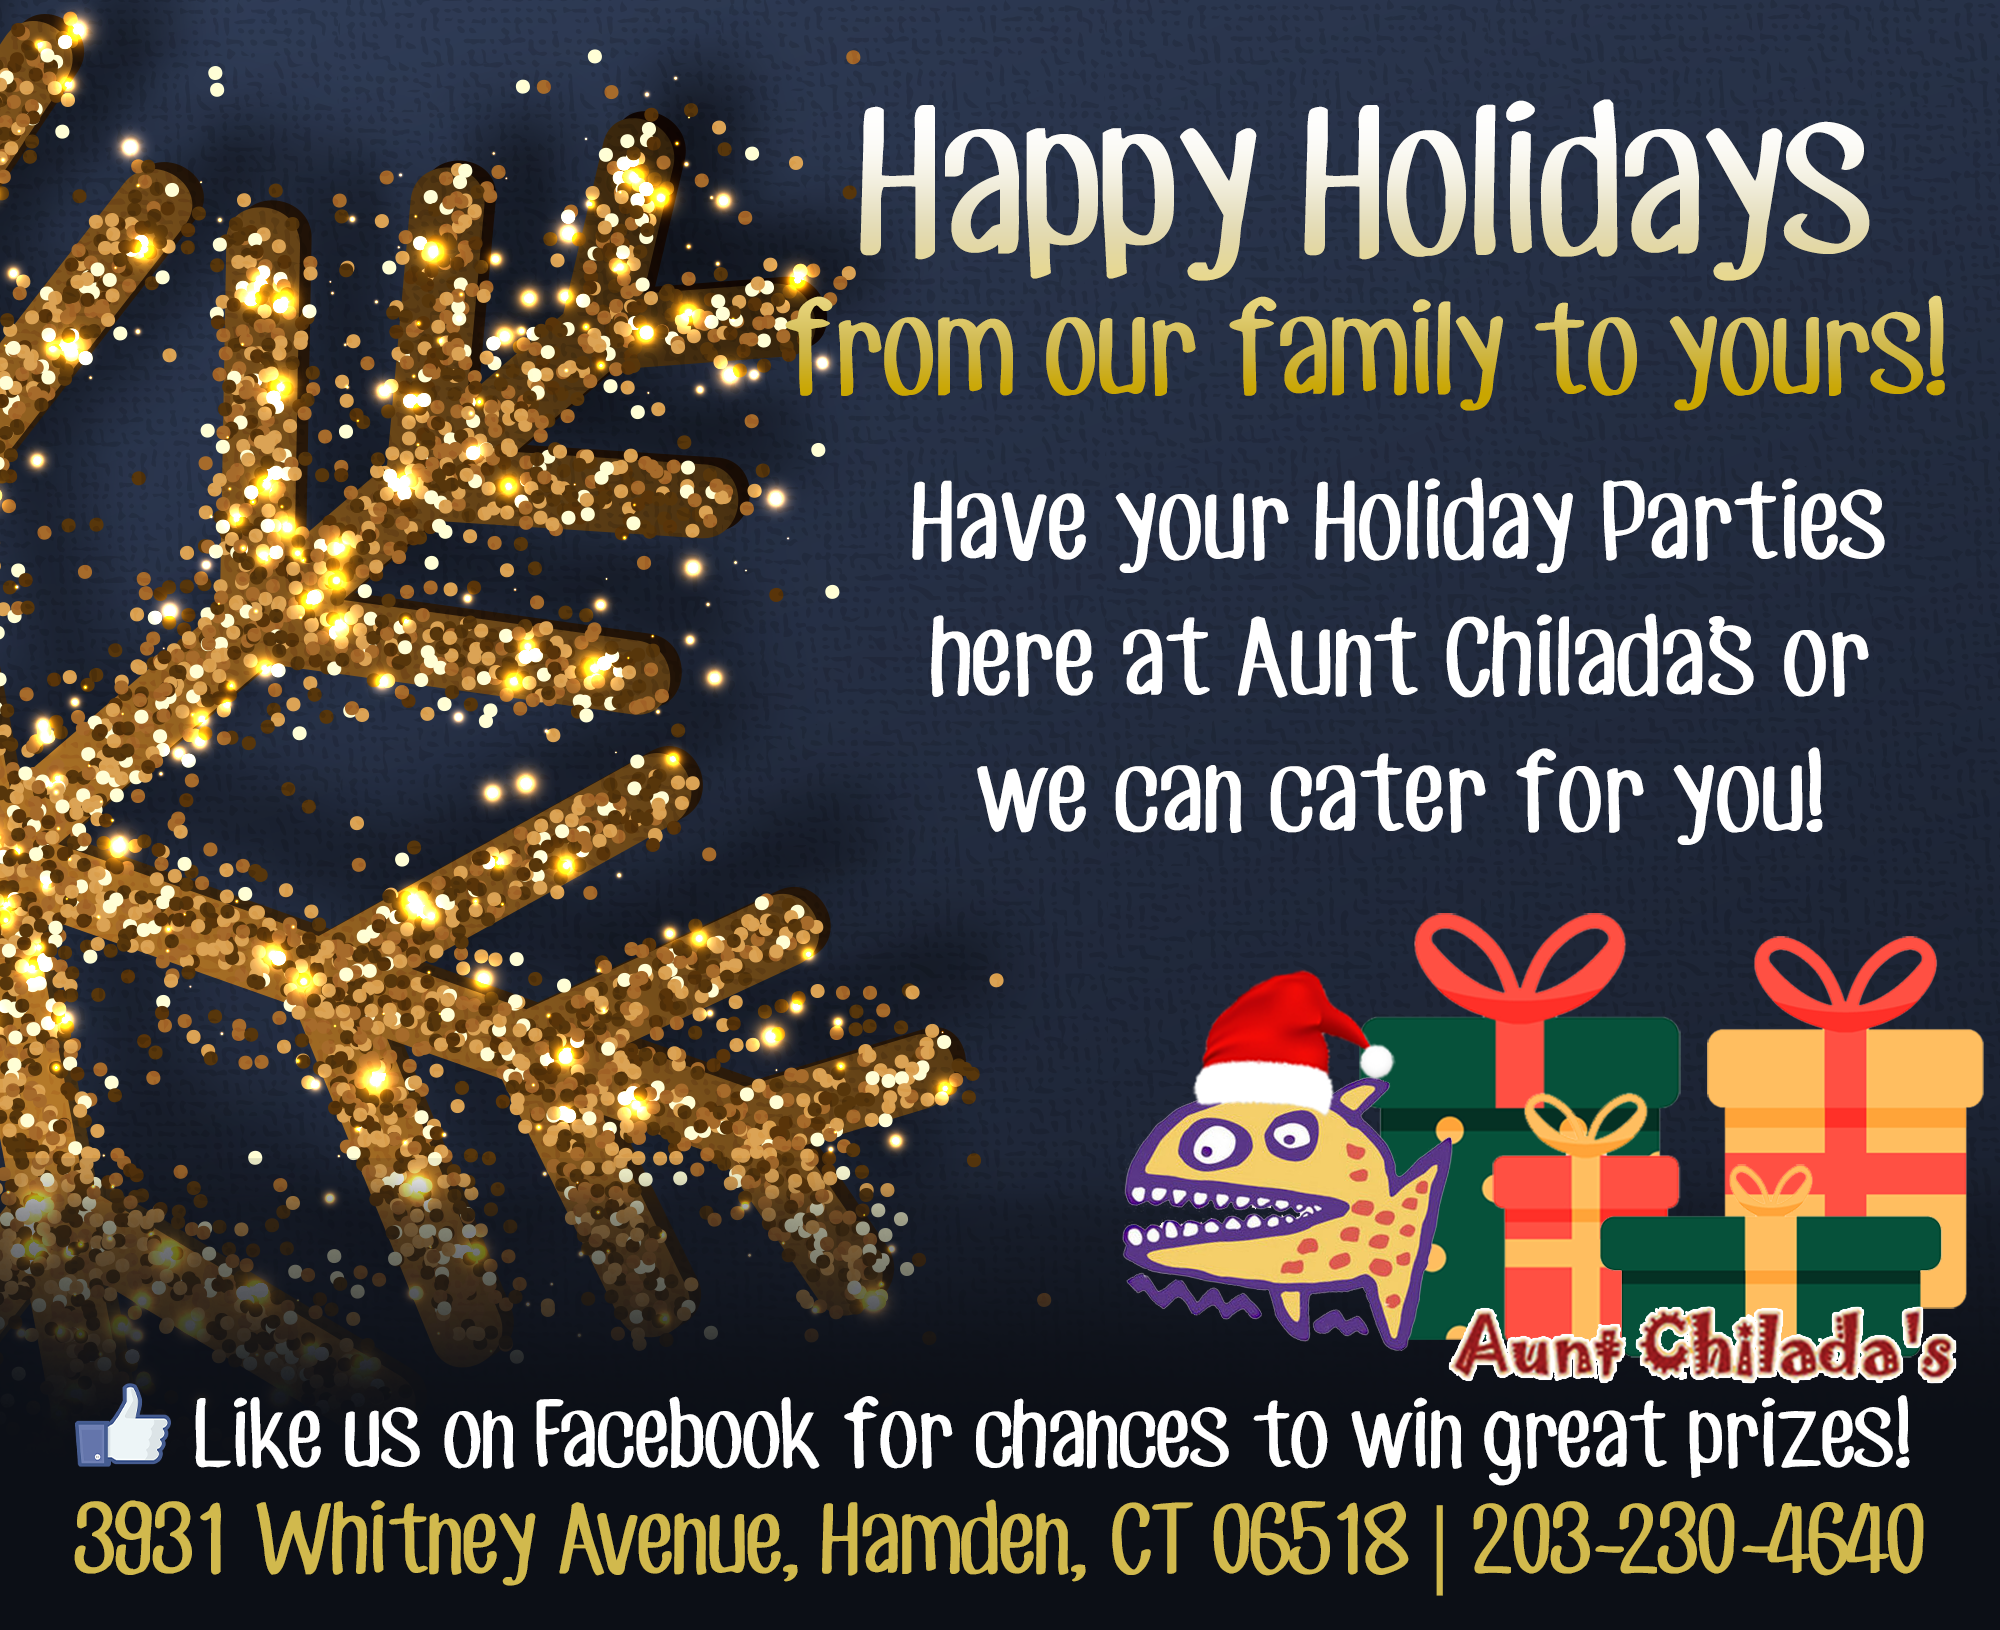 Happy holidays from our family to yours! Have your Holiday Parties here at Aunt Chilada's or we can cater for you!